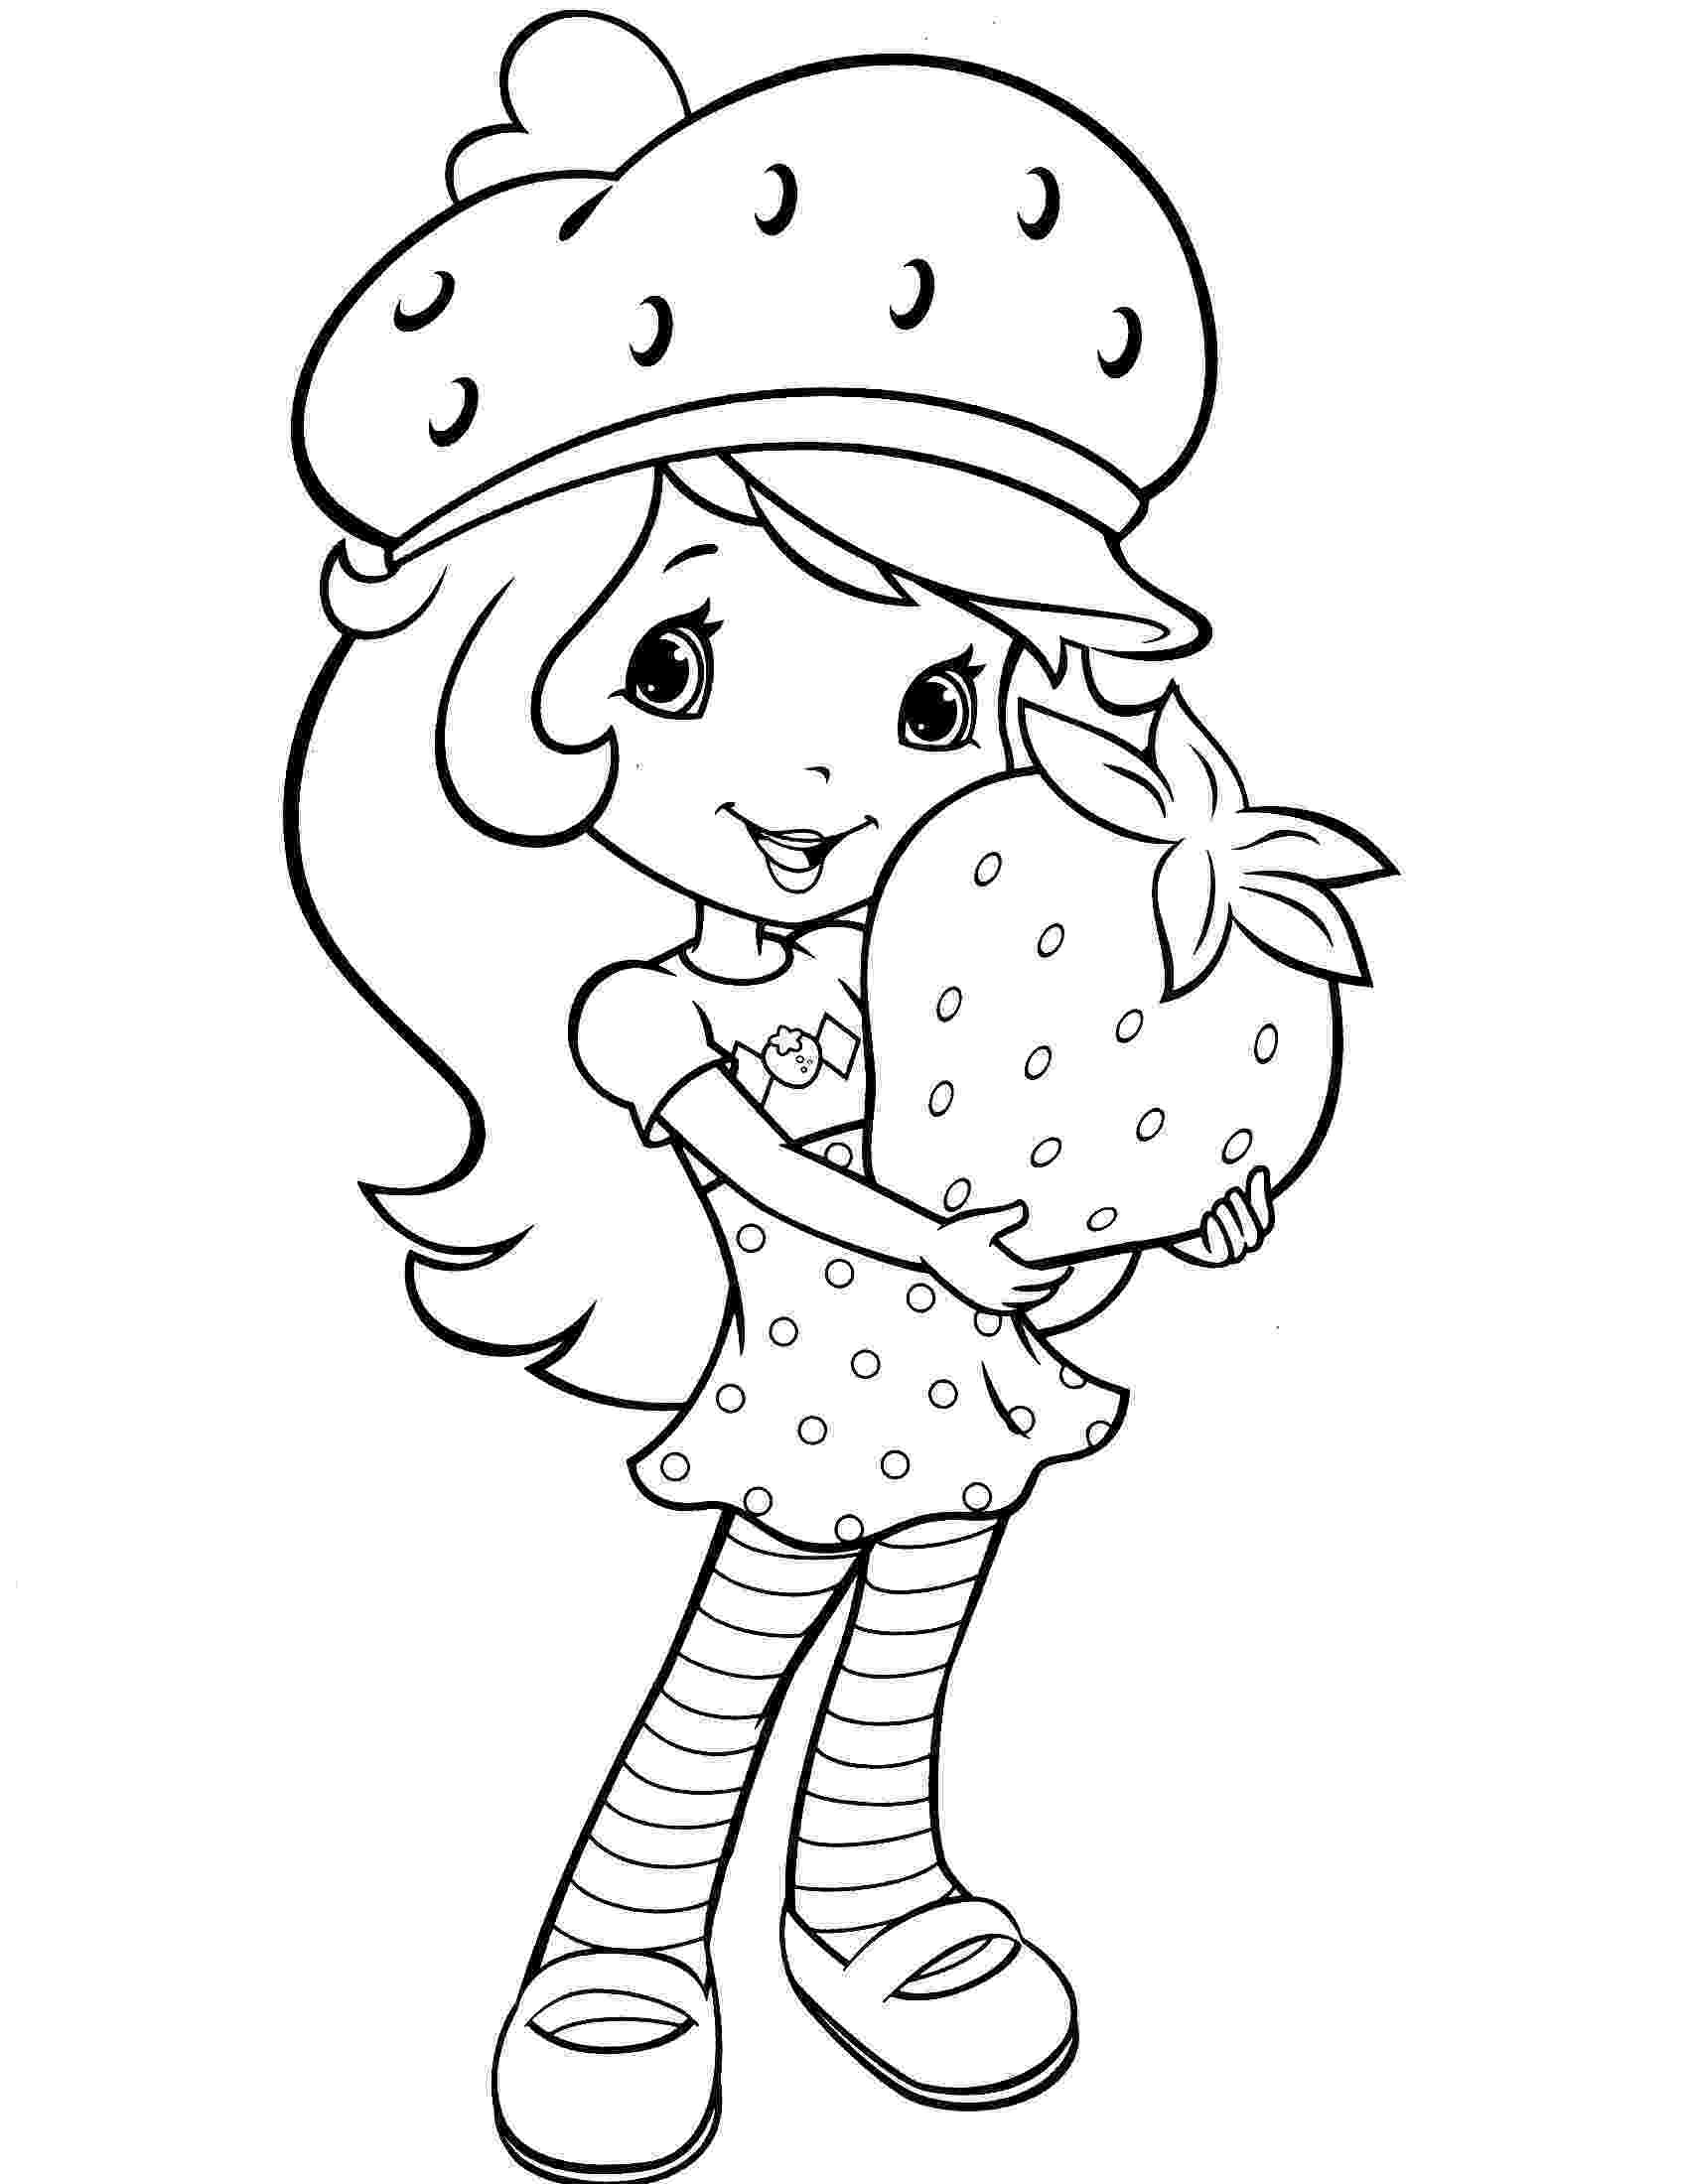 strawberry shortcake coloring pages free strawberry shortcake coloring pages kidsuki pages coloring strawberry free shortcake